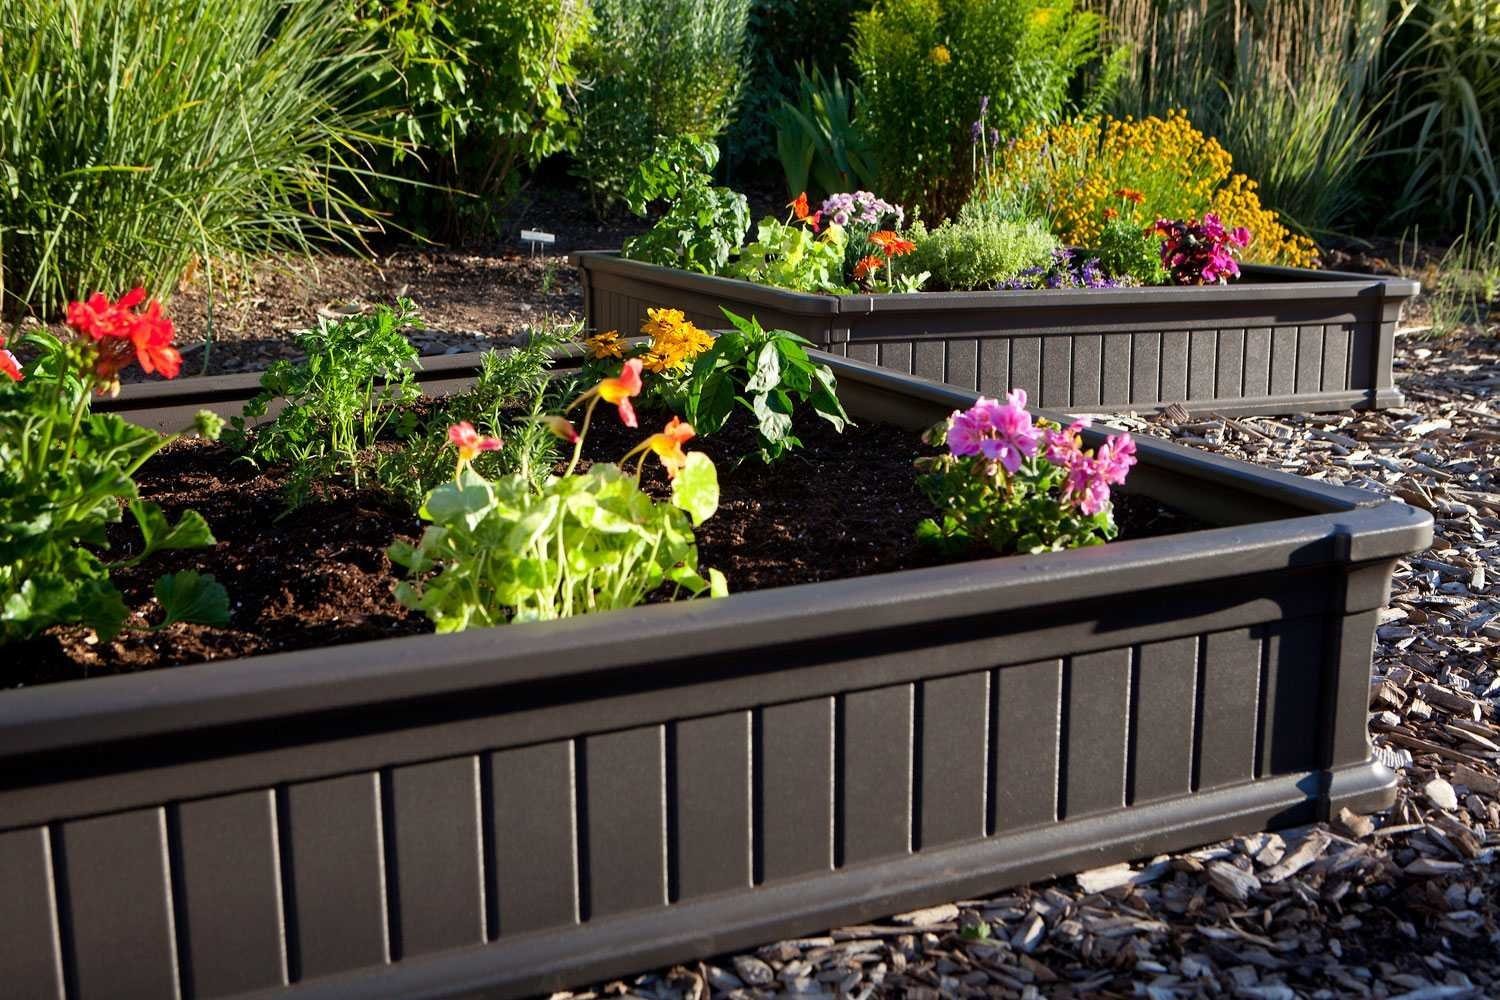 10 Inspiring DIY Raised Garden Beds-Ideas,Plans and ...